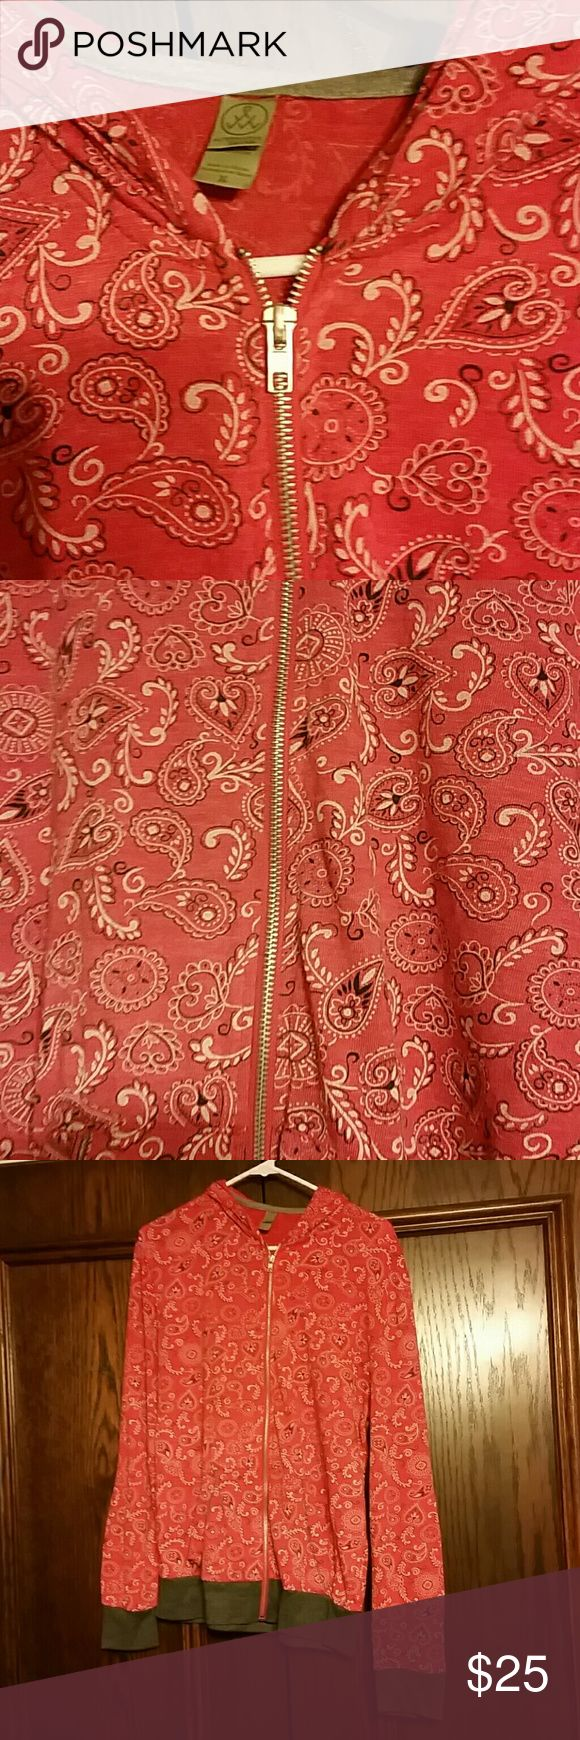 Alternative Earth Apparel Red Paisley Zip up hoody Alternative Earth Apparel Red Paisley Zip up hoody!  Super soft & comfy! Dark grey wrist cuffs & bottom of hoody.  Ladies Medium. True to size. Too big for me.  =( Never worn. No tags.   Happy Poshing! Alternative Apparel Tops Sweatshirts & Hoodies